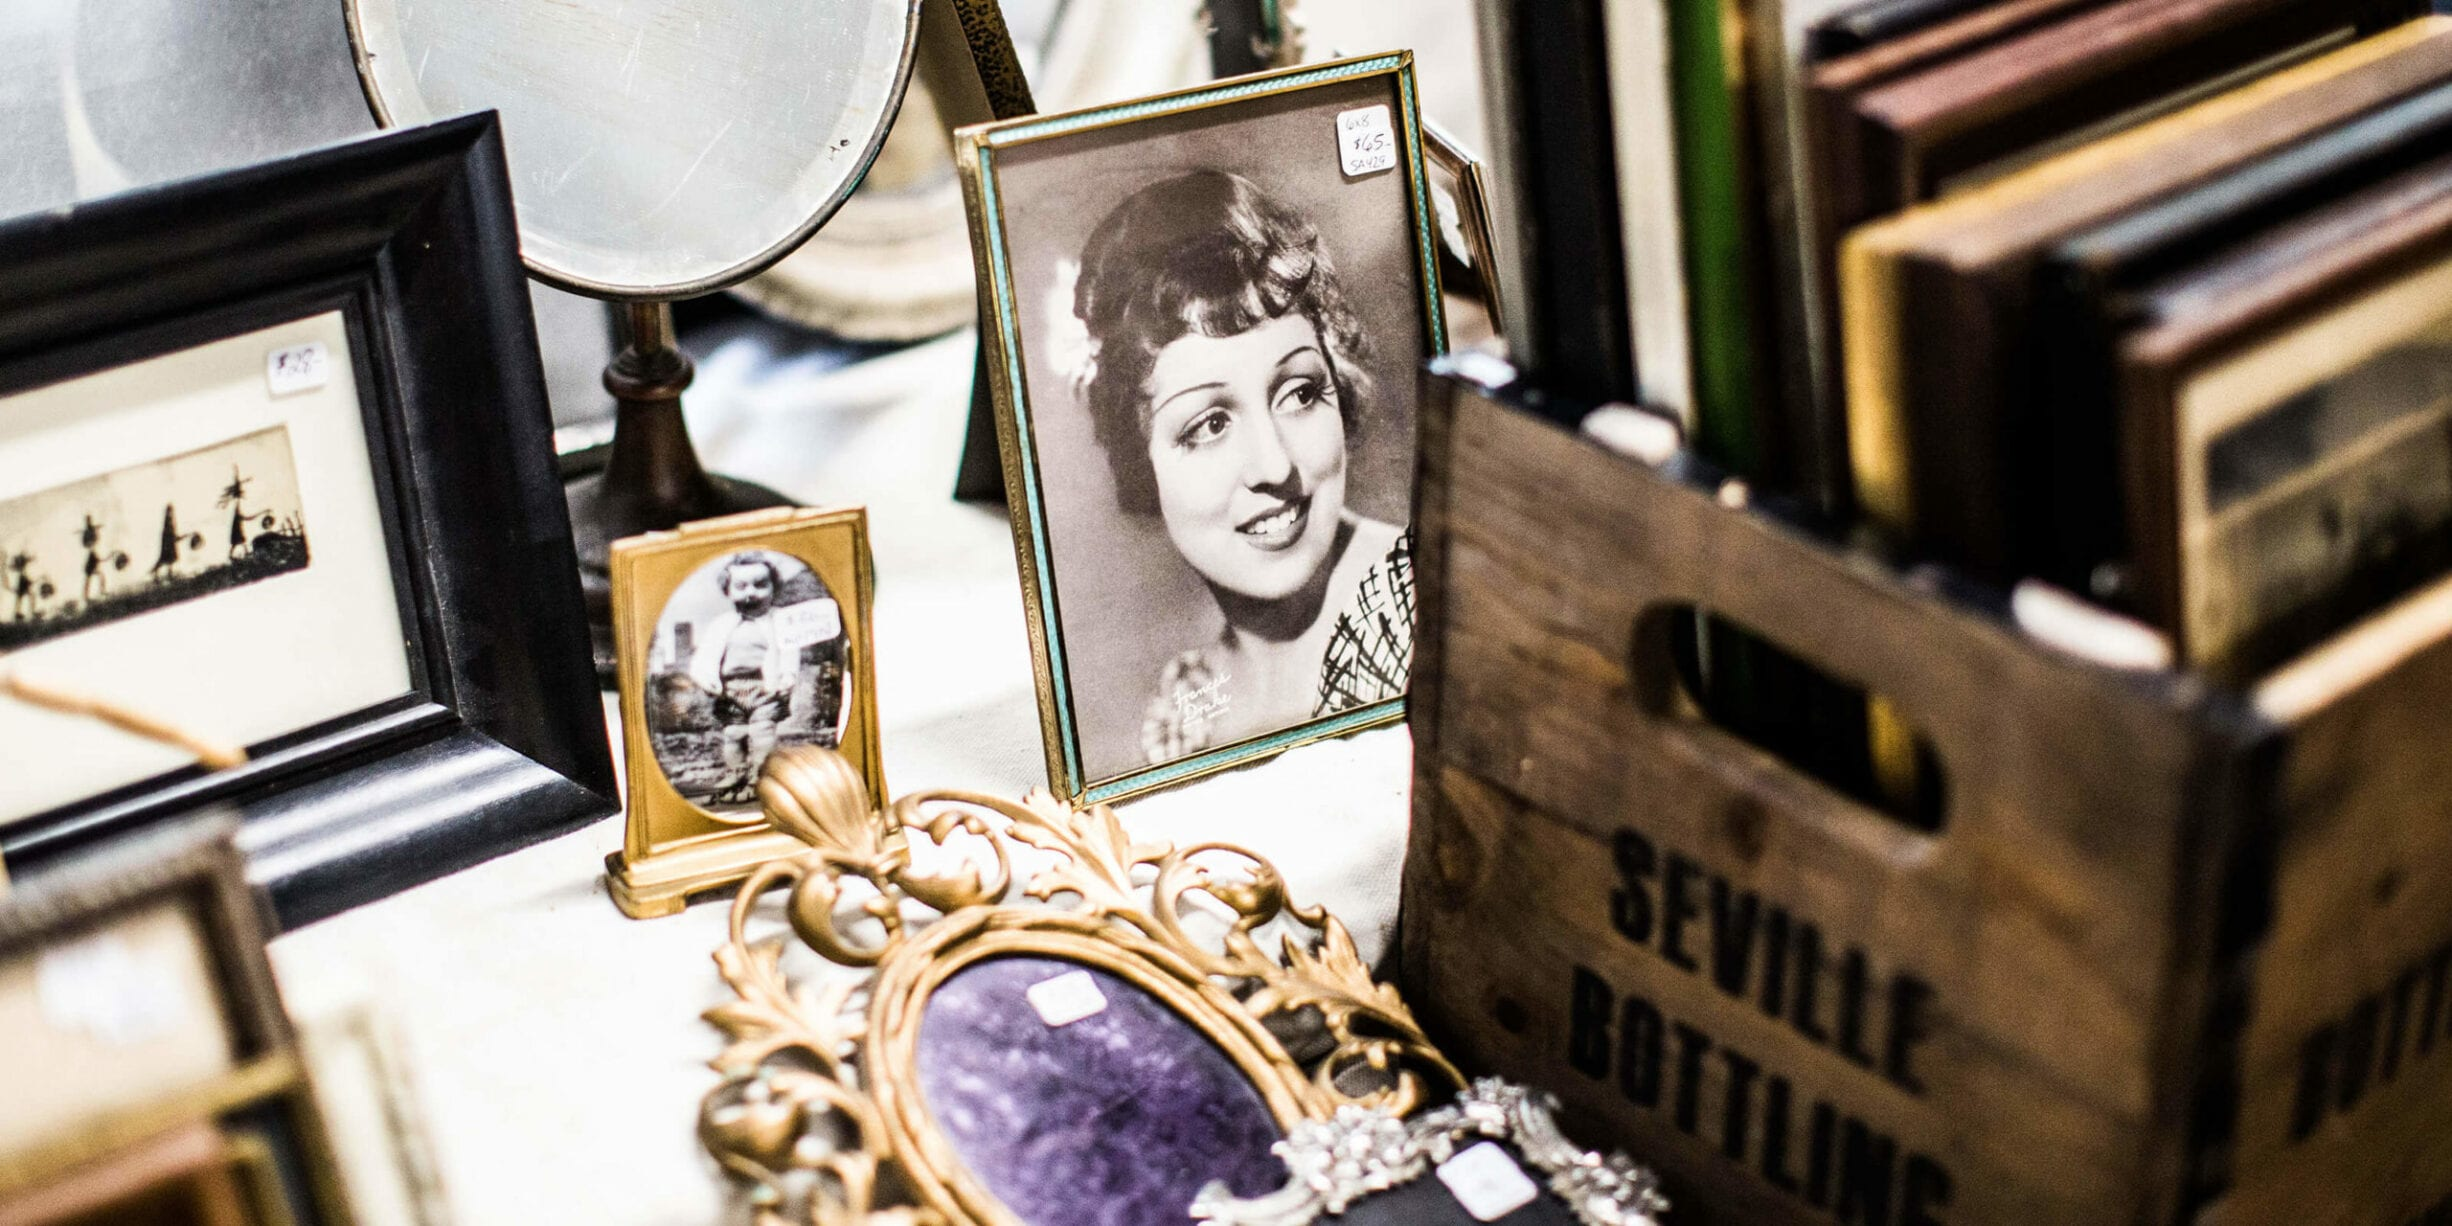 antique shop shelf, picture frames